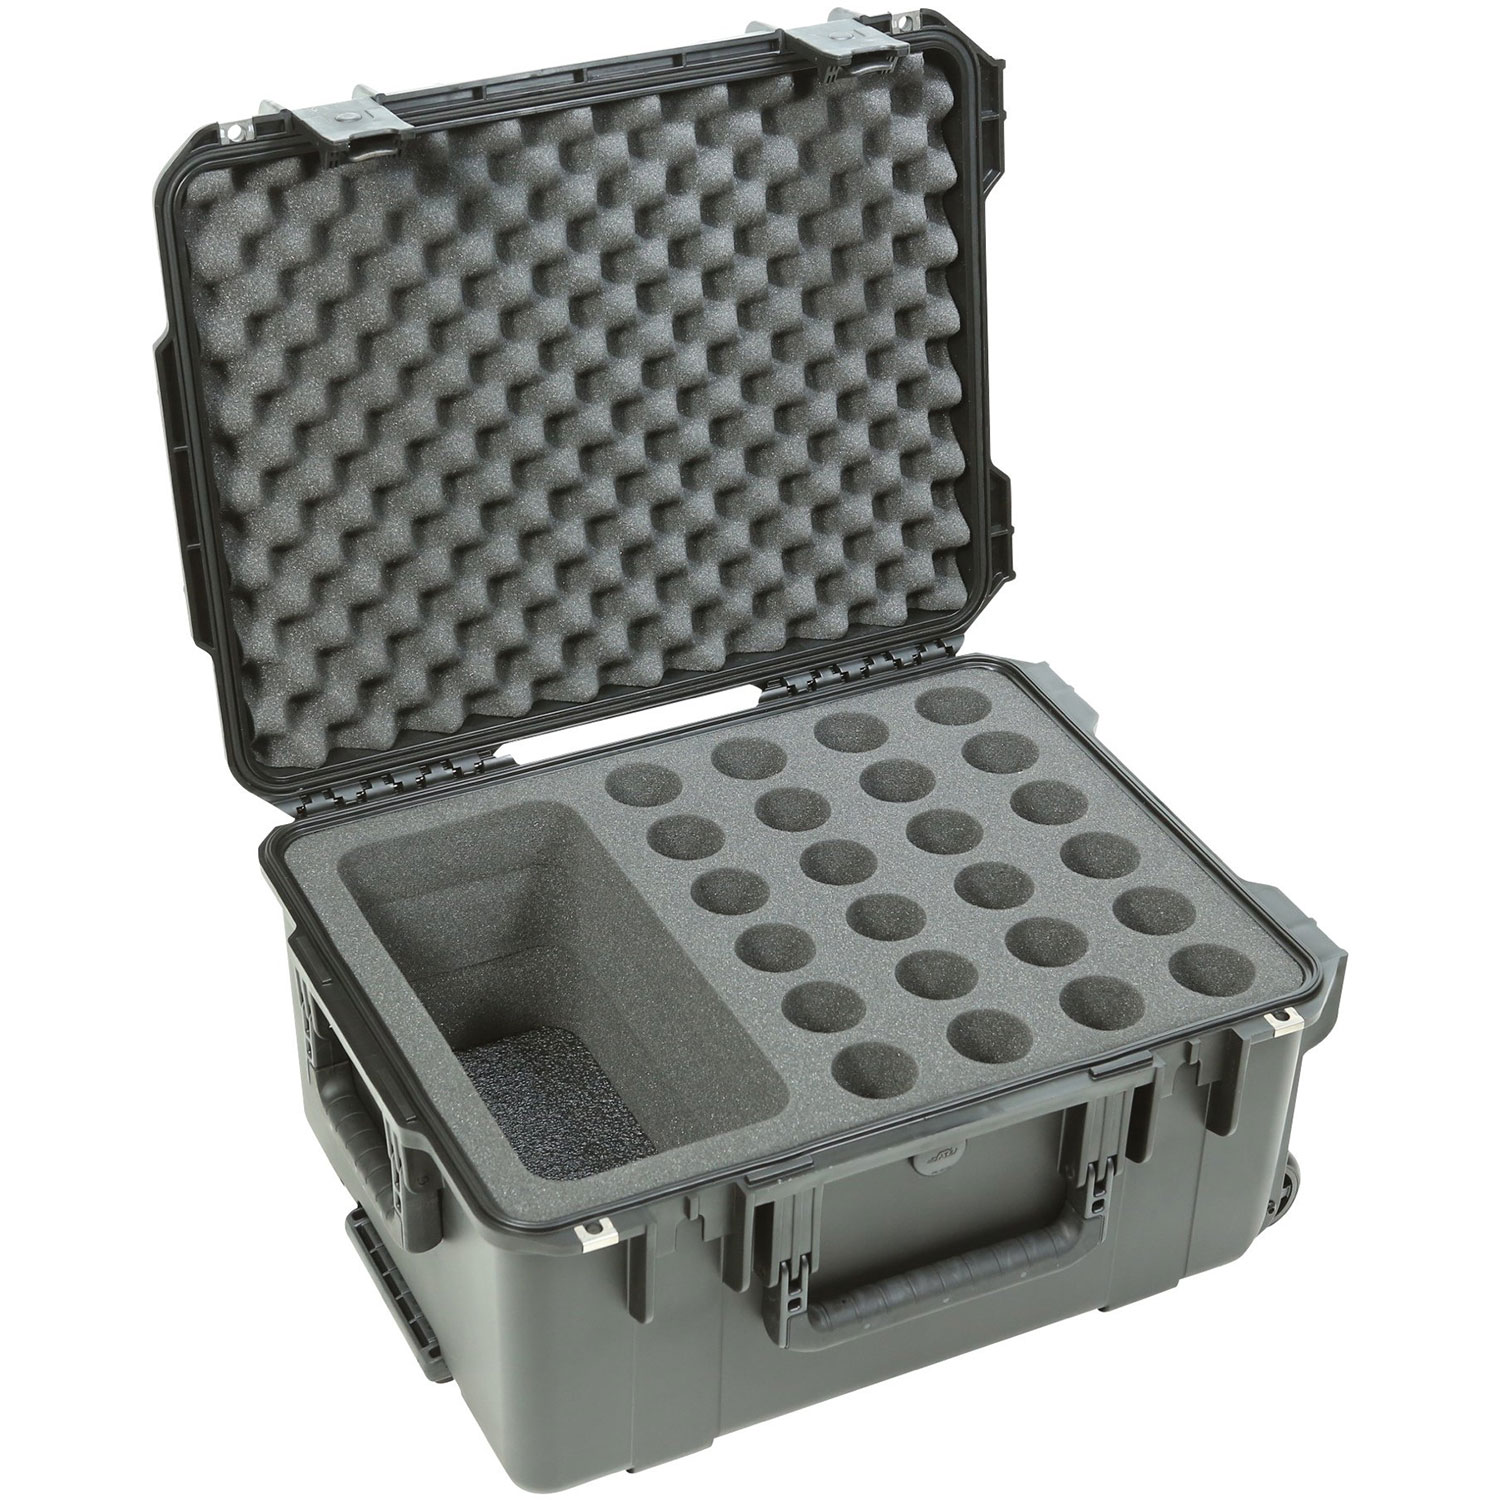 SKB iSeries Injection Molded Foam-Lined Waterproof Case for Microphones (24) with Storage Compartment and Wheels